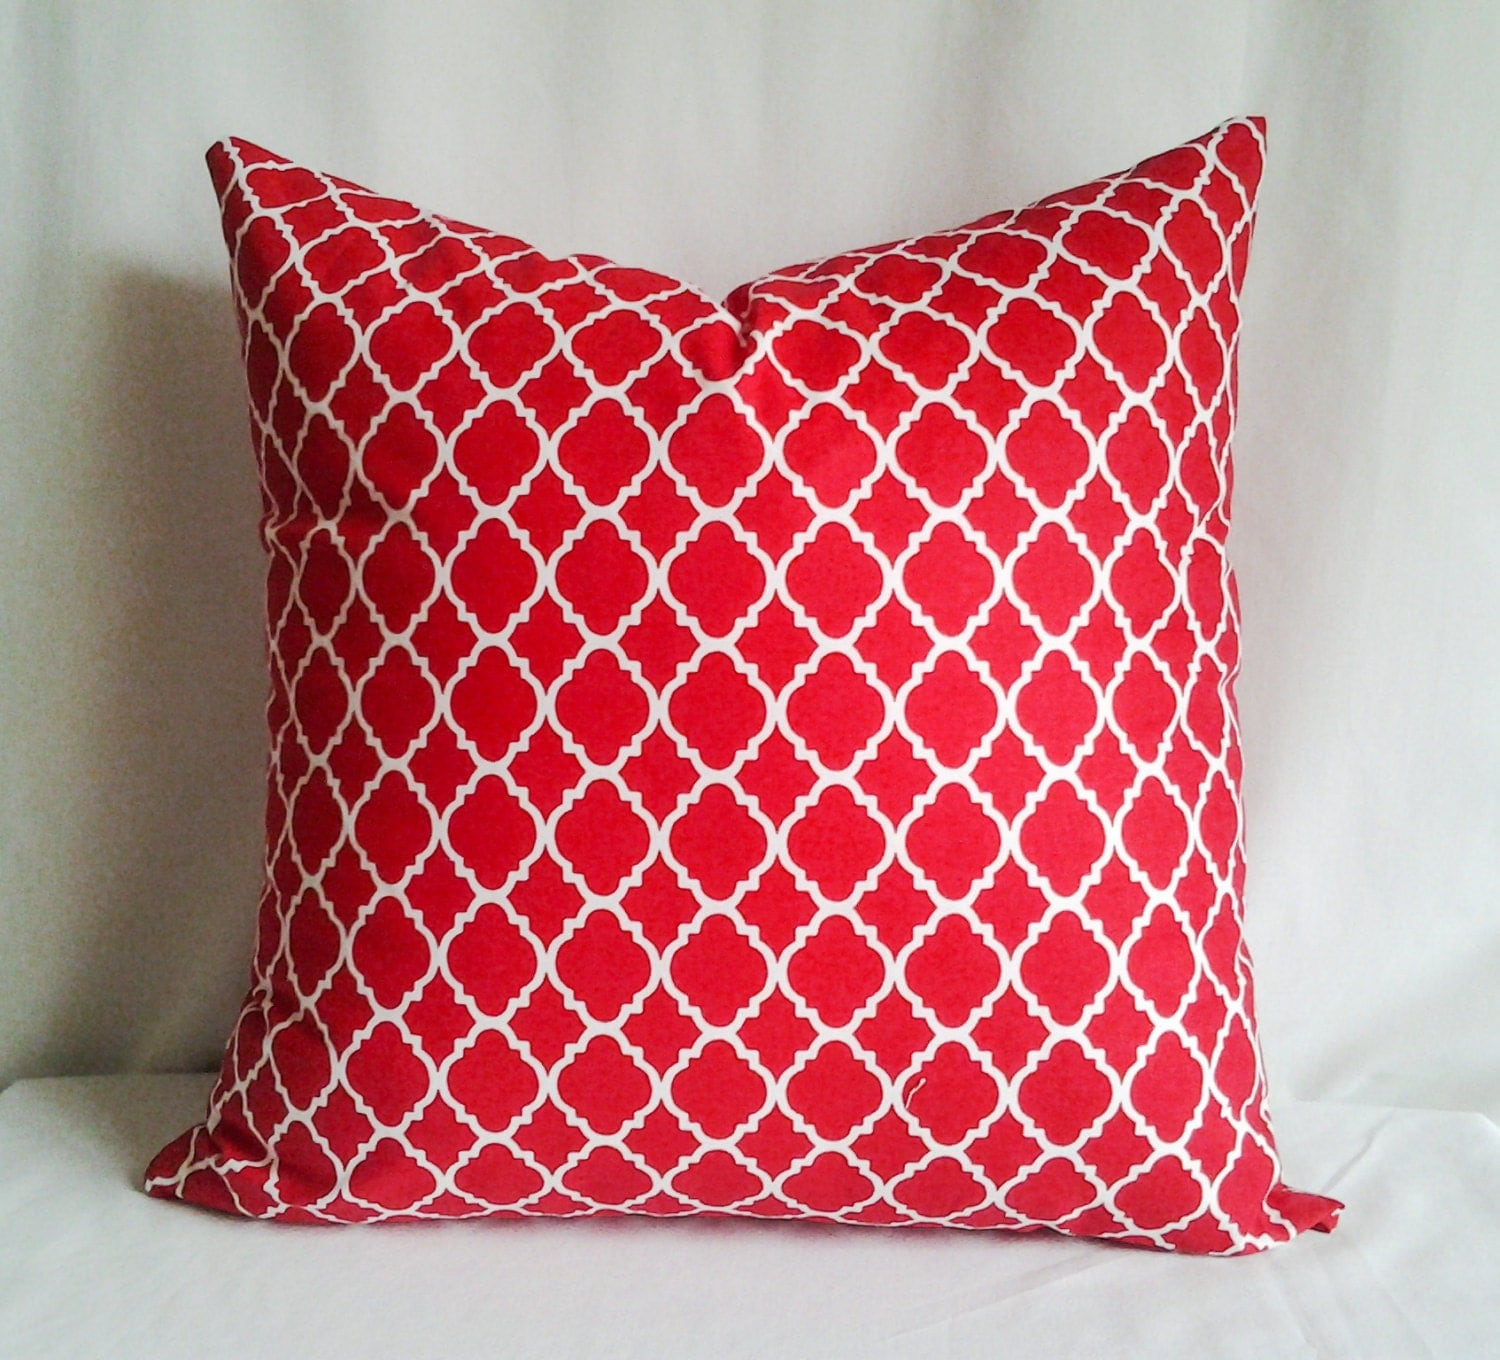 Red And White Throw Pillow Covers : Red and White Pillow Cover 18x18 Pillow Cover Decorative